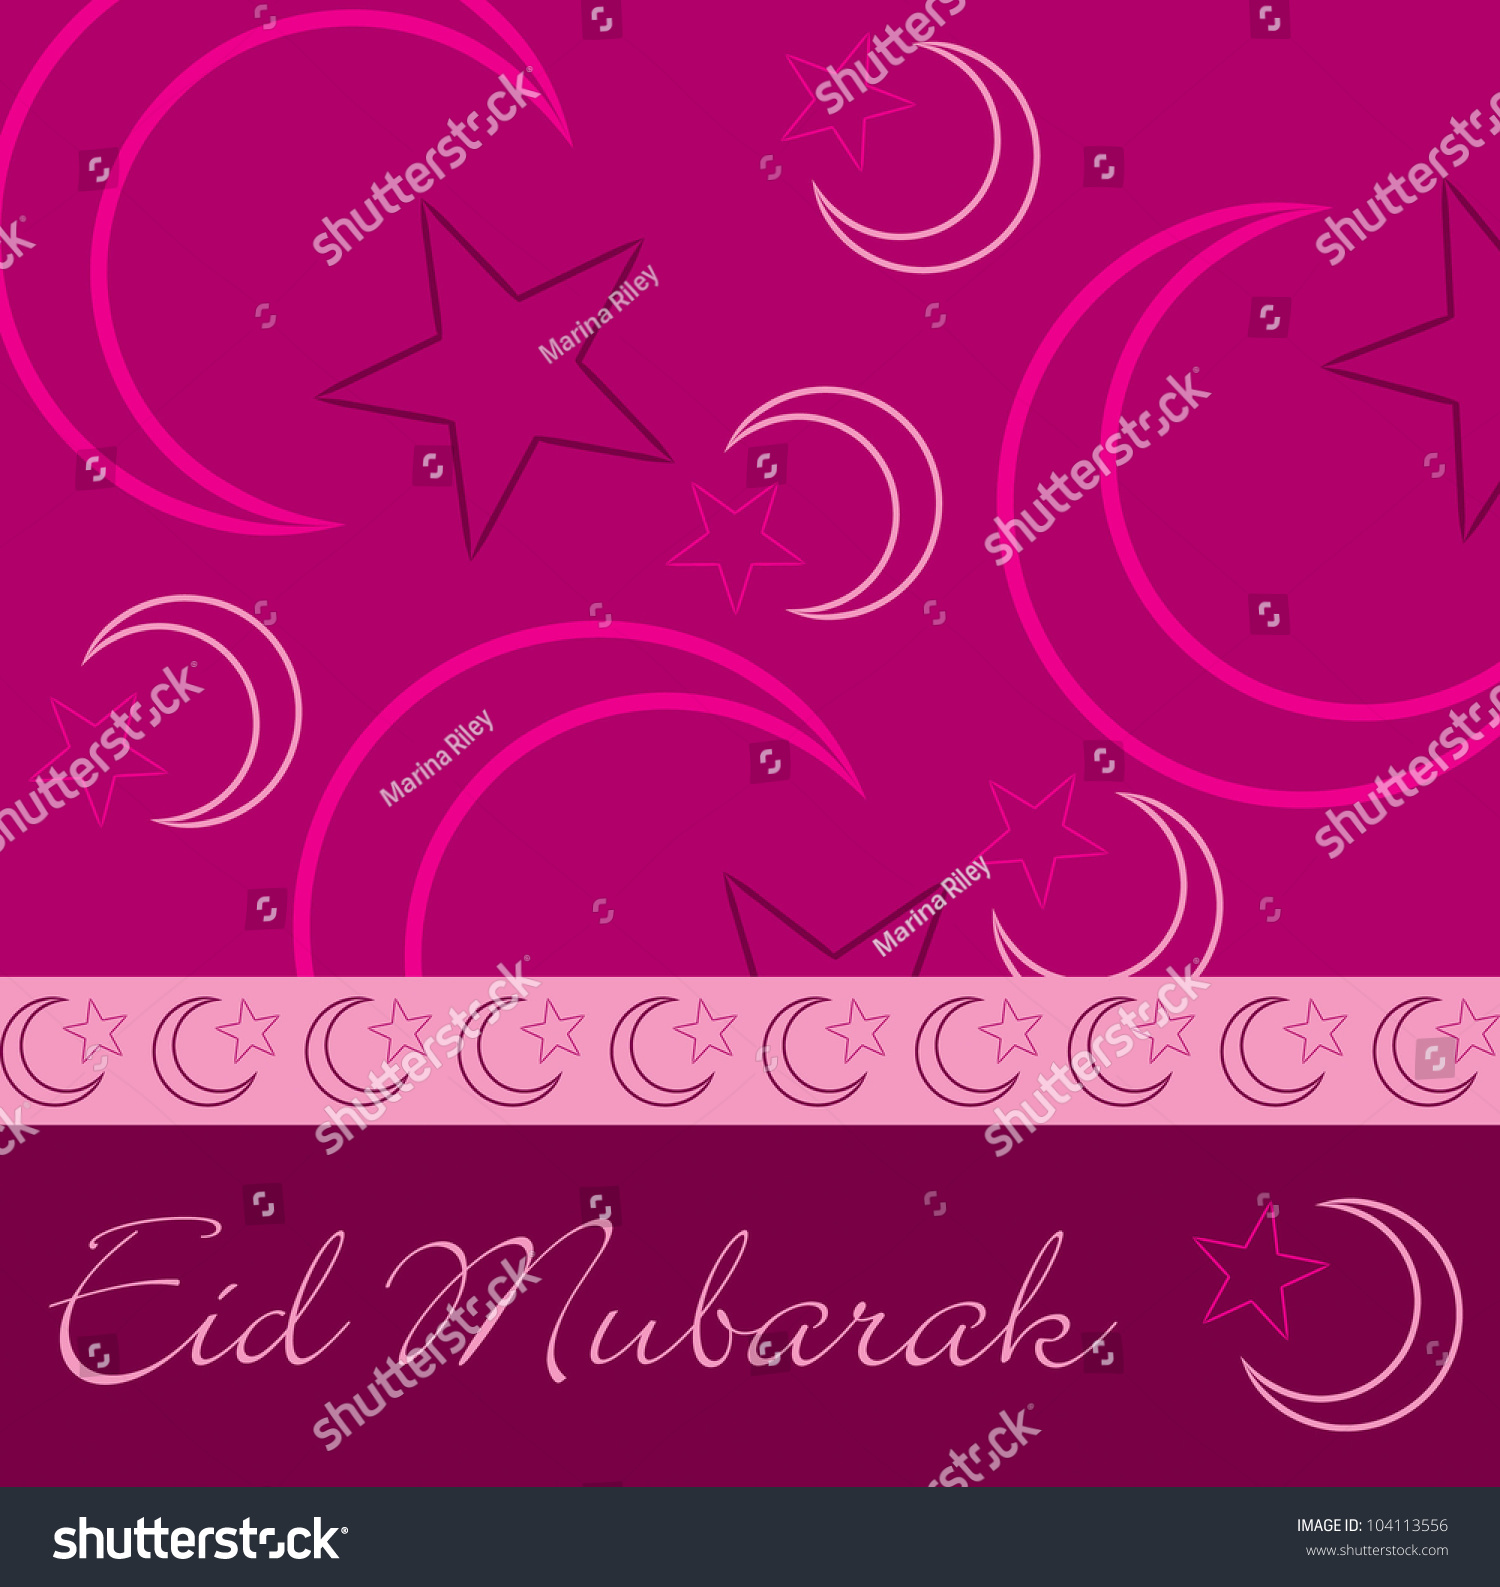 Hand drawn eid mubarak blessed eid stock vector 104113556 hand drawn eid mubarak blessed eid greeting card in vector format kristyandbryce Image collections